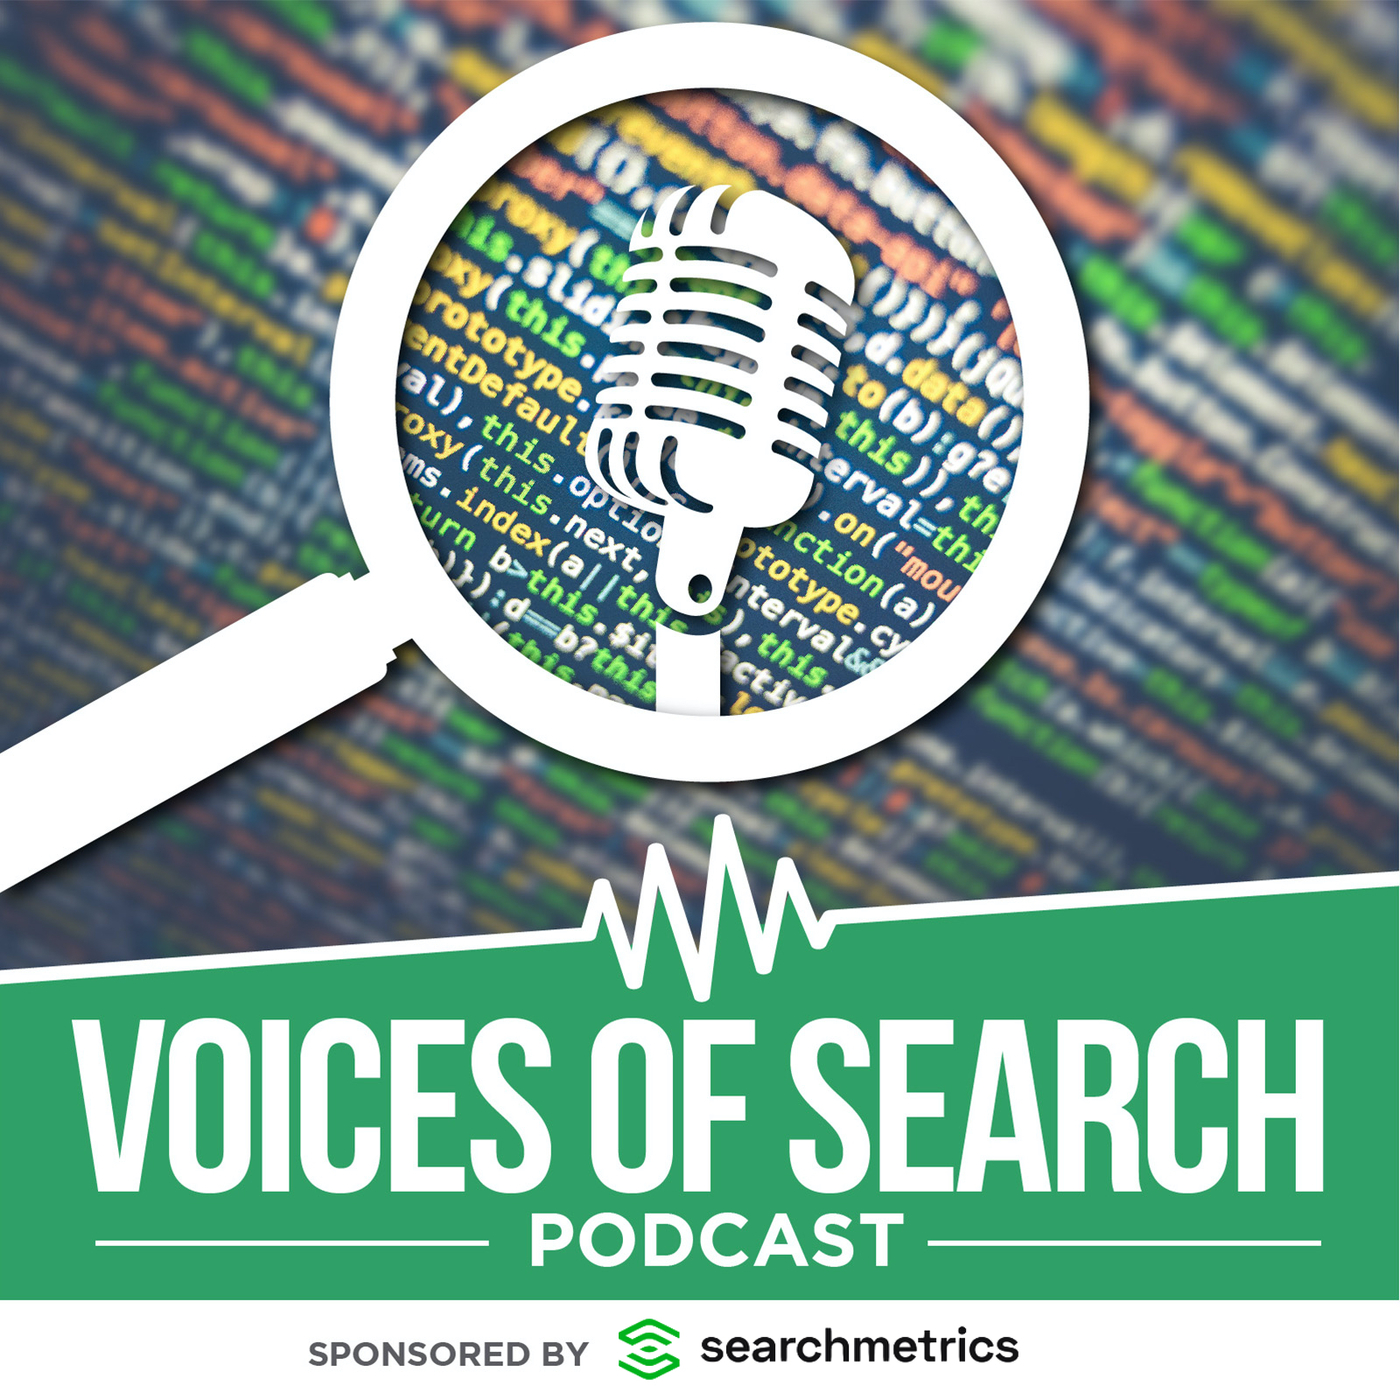 Voices Of Search podcast logo